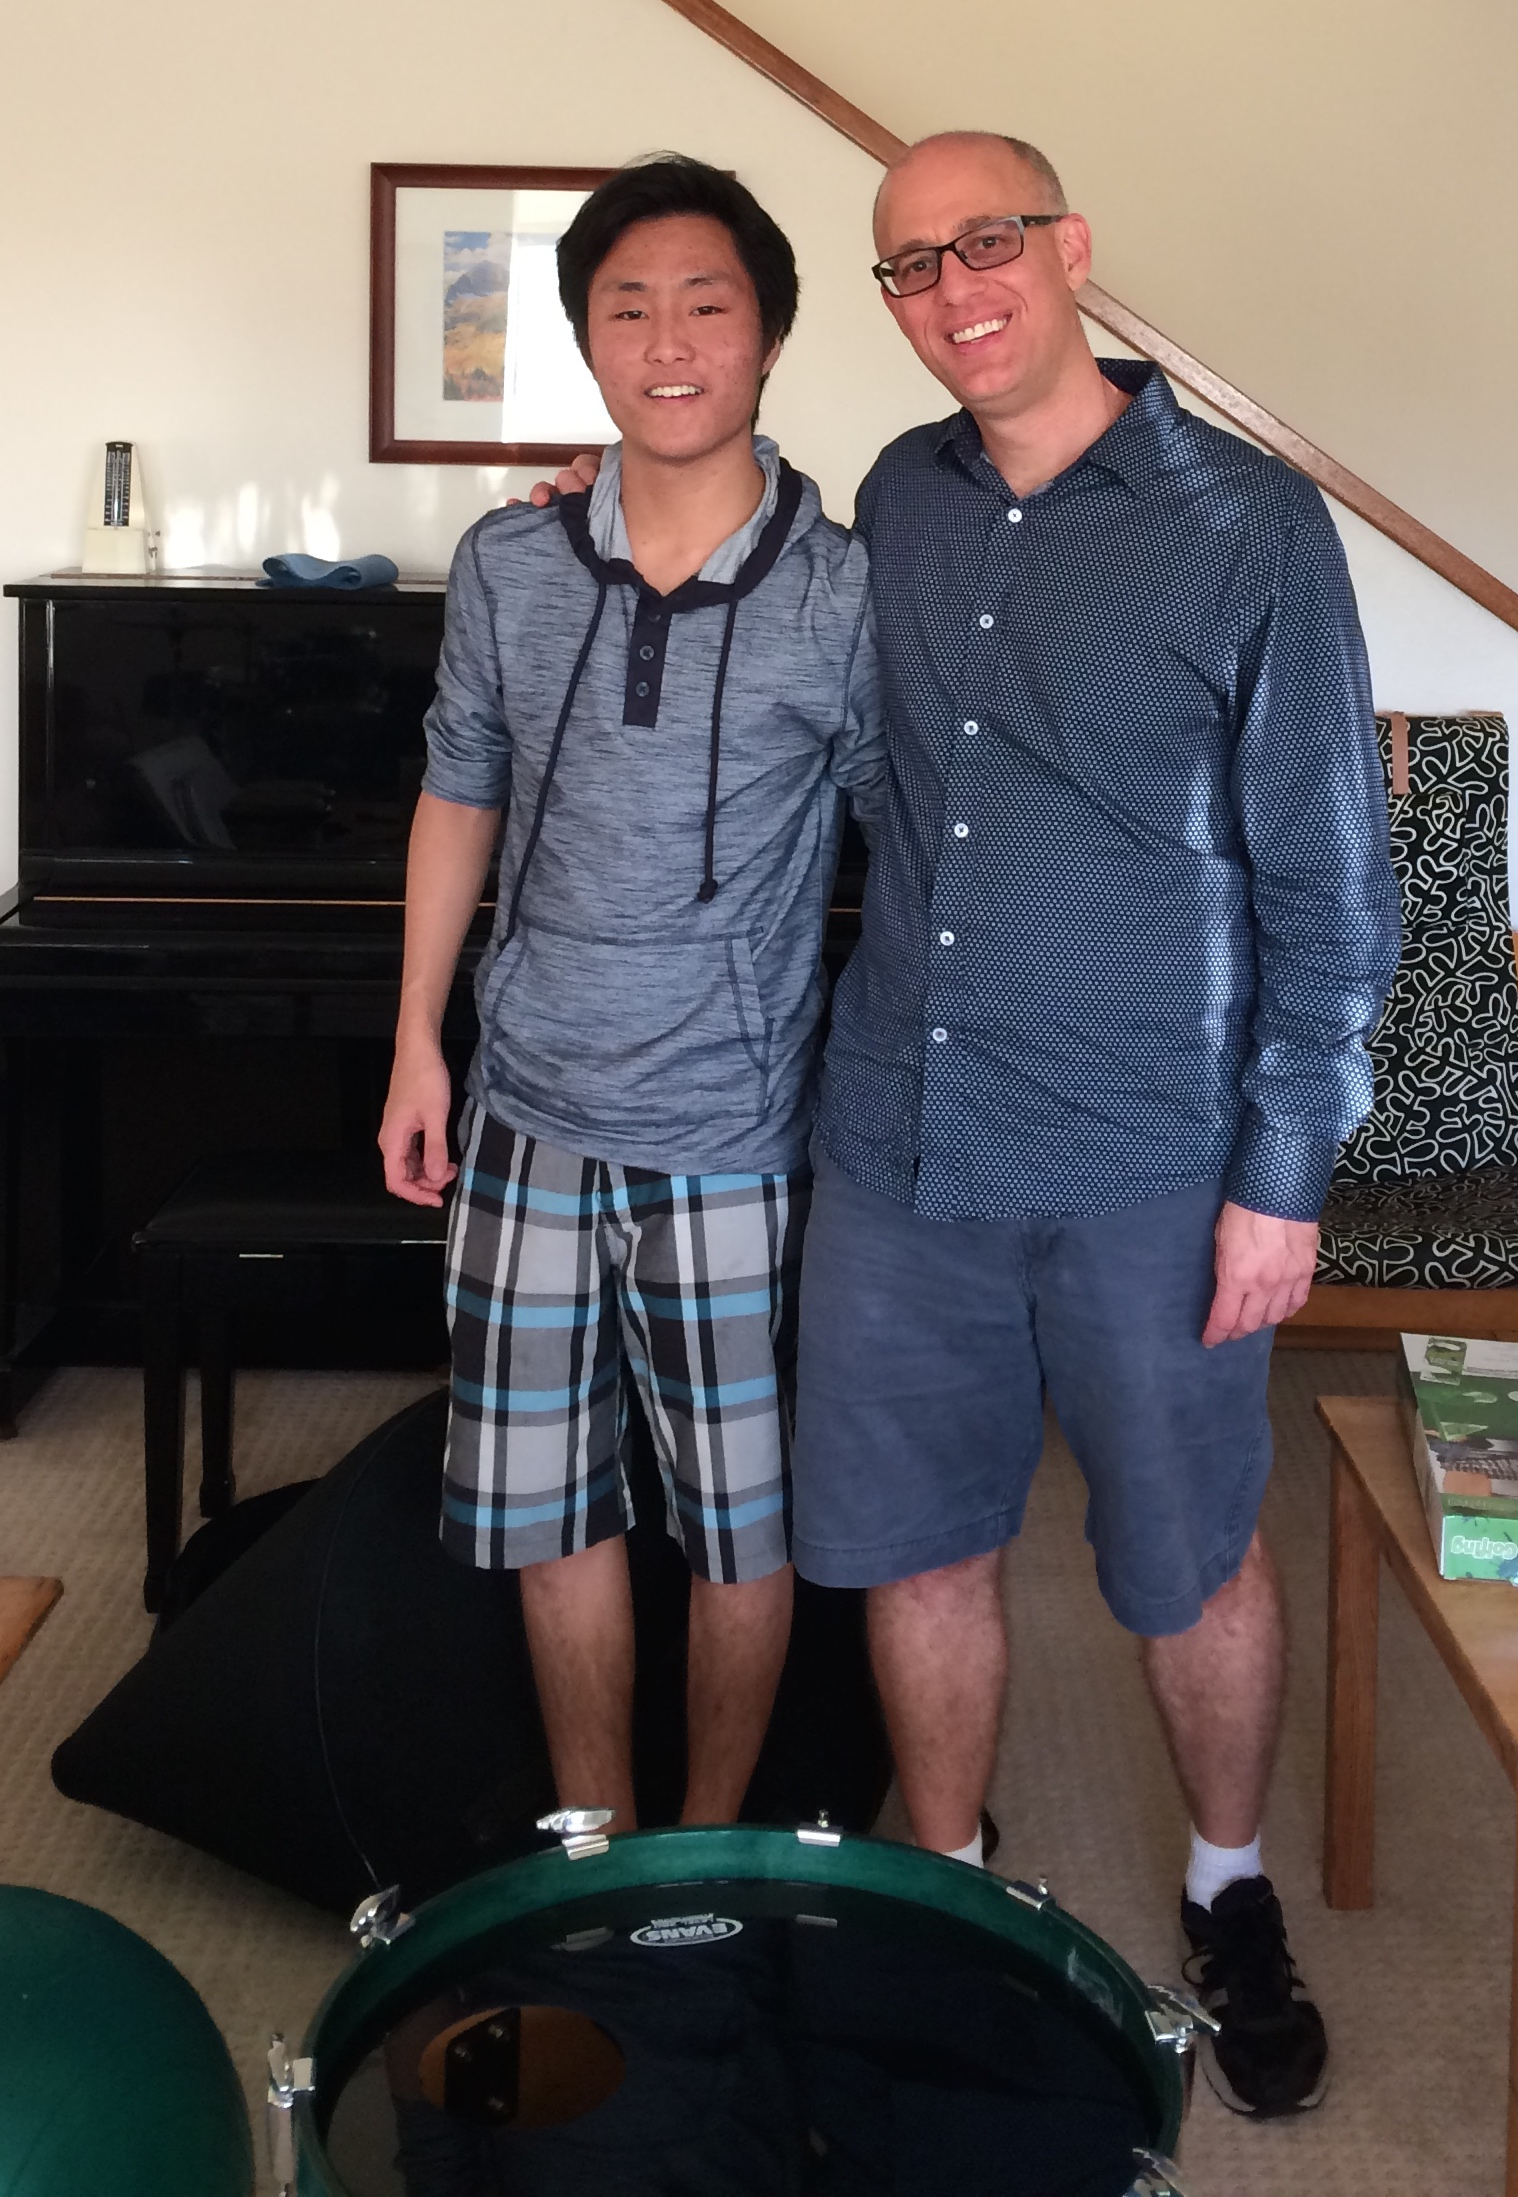 Many thanks to my drum student and LMU student Cameron Kuwada for swapping bass drums with me for my recording session!